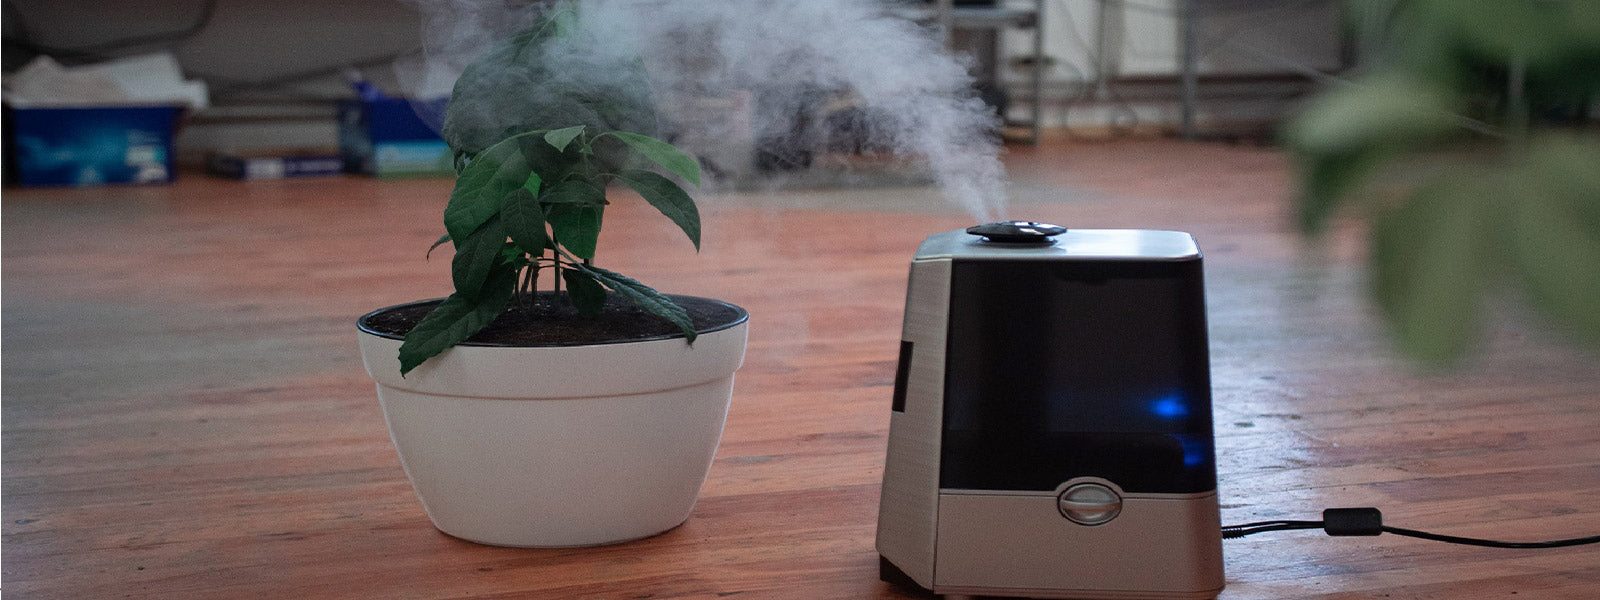 Humidifier against coronavirus